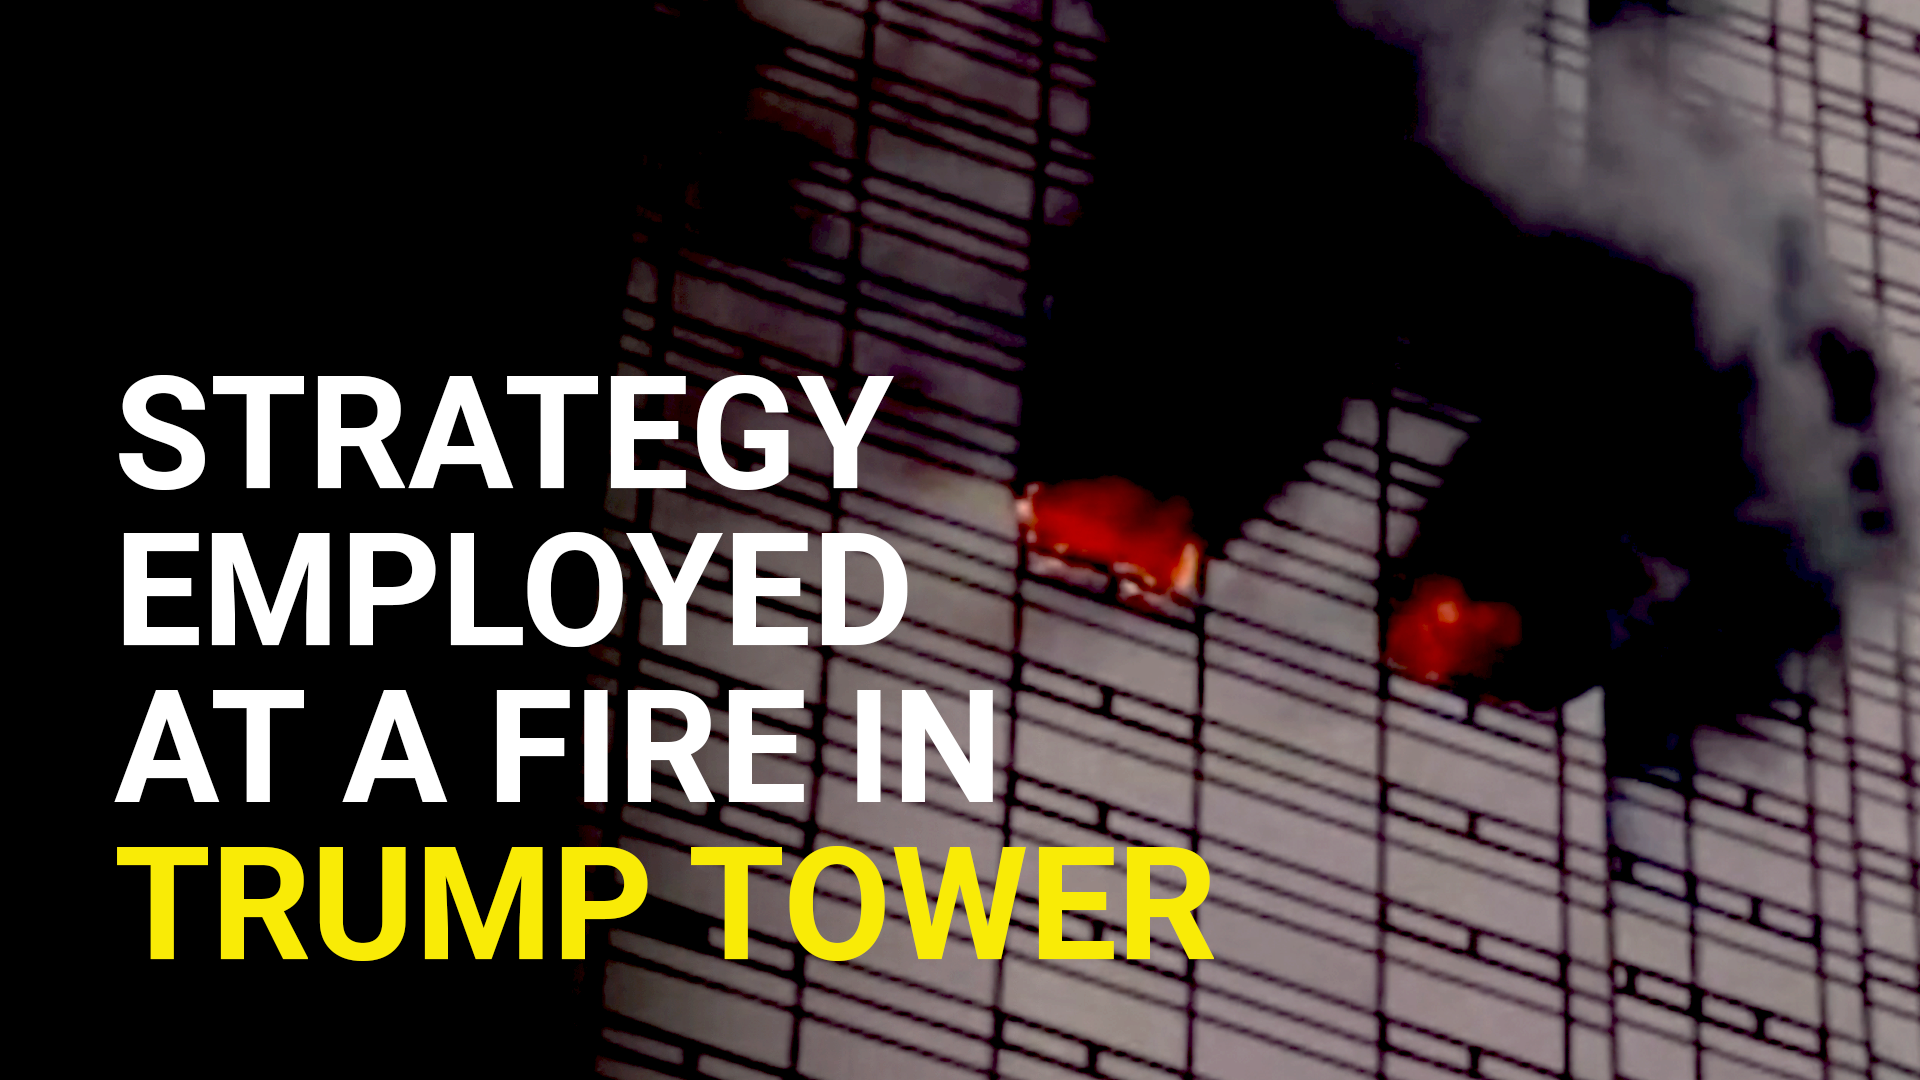 trump-tower-fire copy